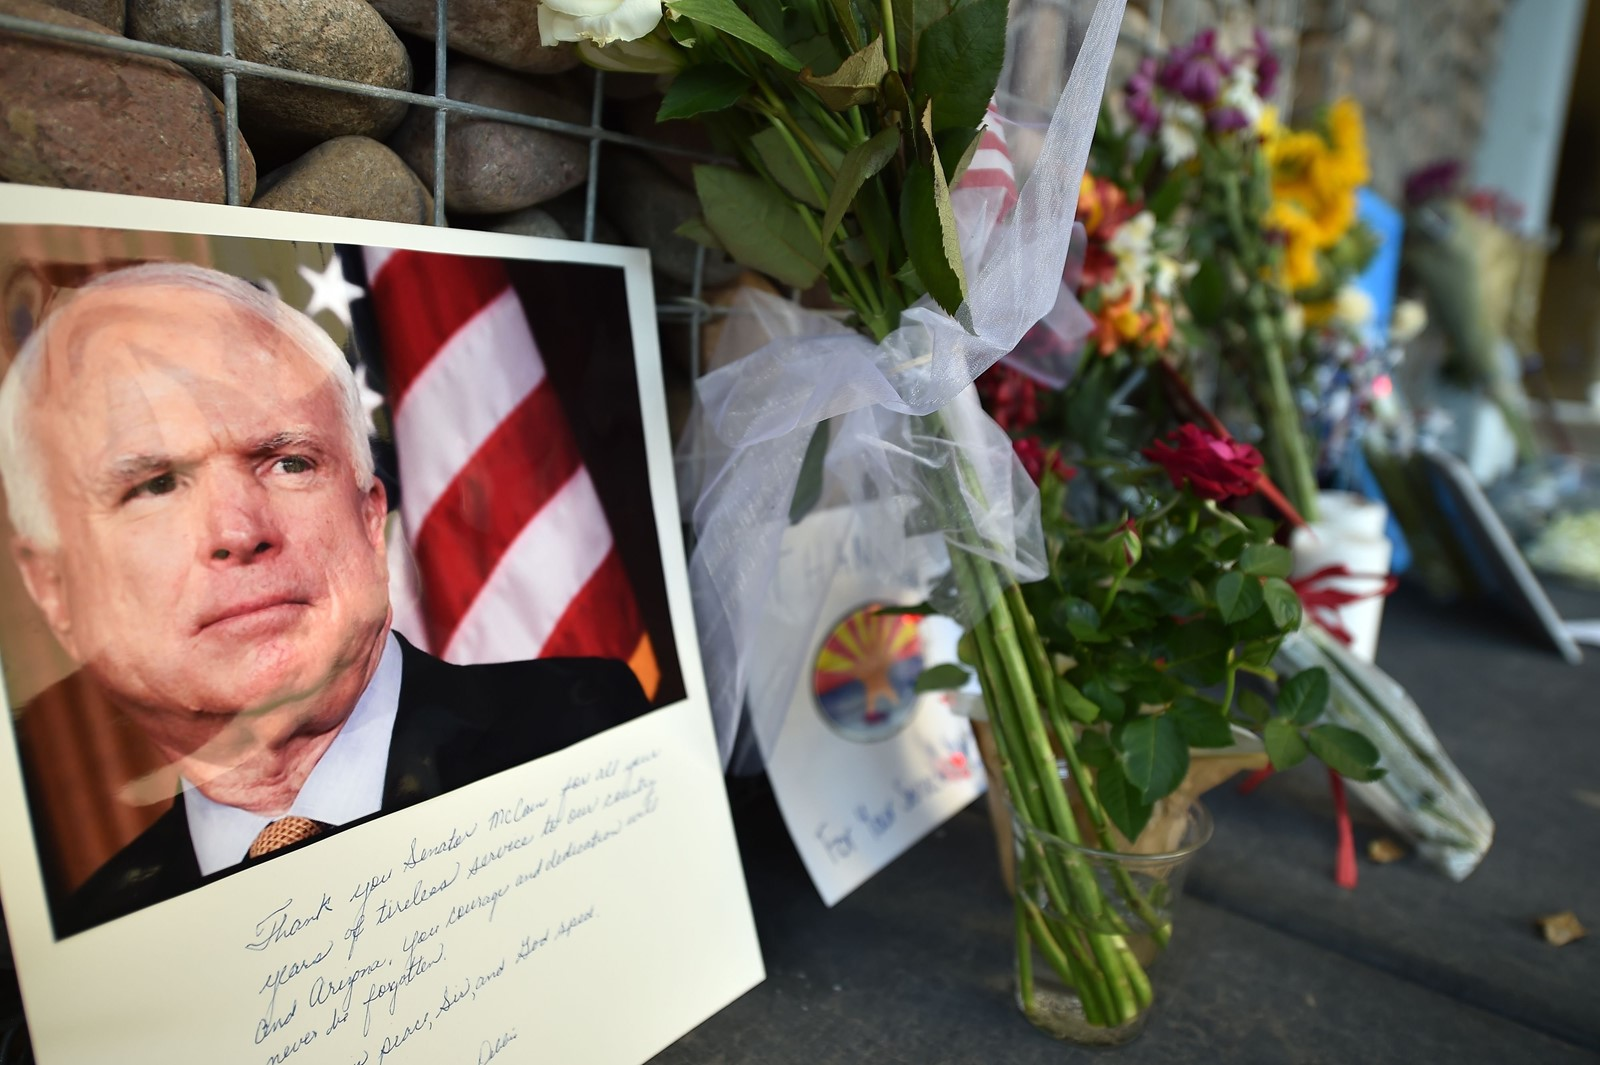 Flowers and cards for Senator John McCain sit outside his office in Phoenix. McCain let it be known that he did not want President Trump at his funeral. — Photograph: Robyn Beck/Agence France-Presse/Getty Images.